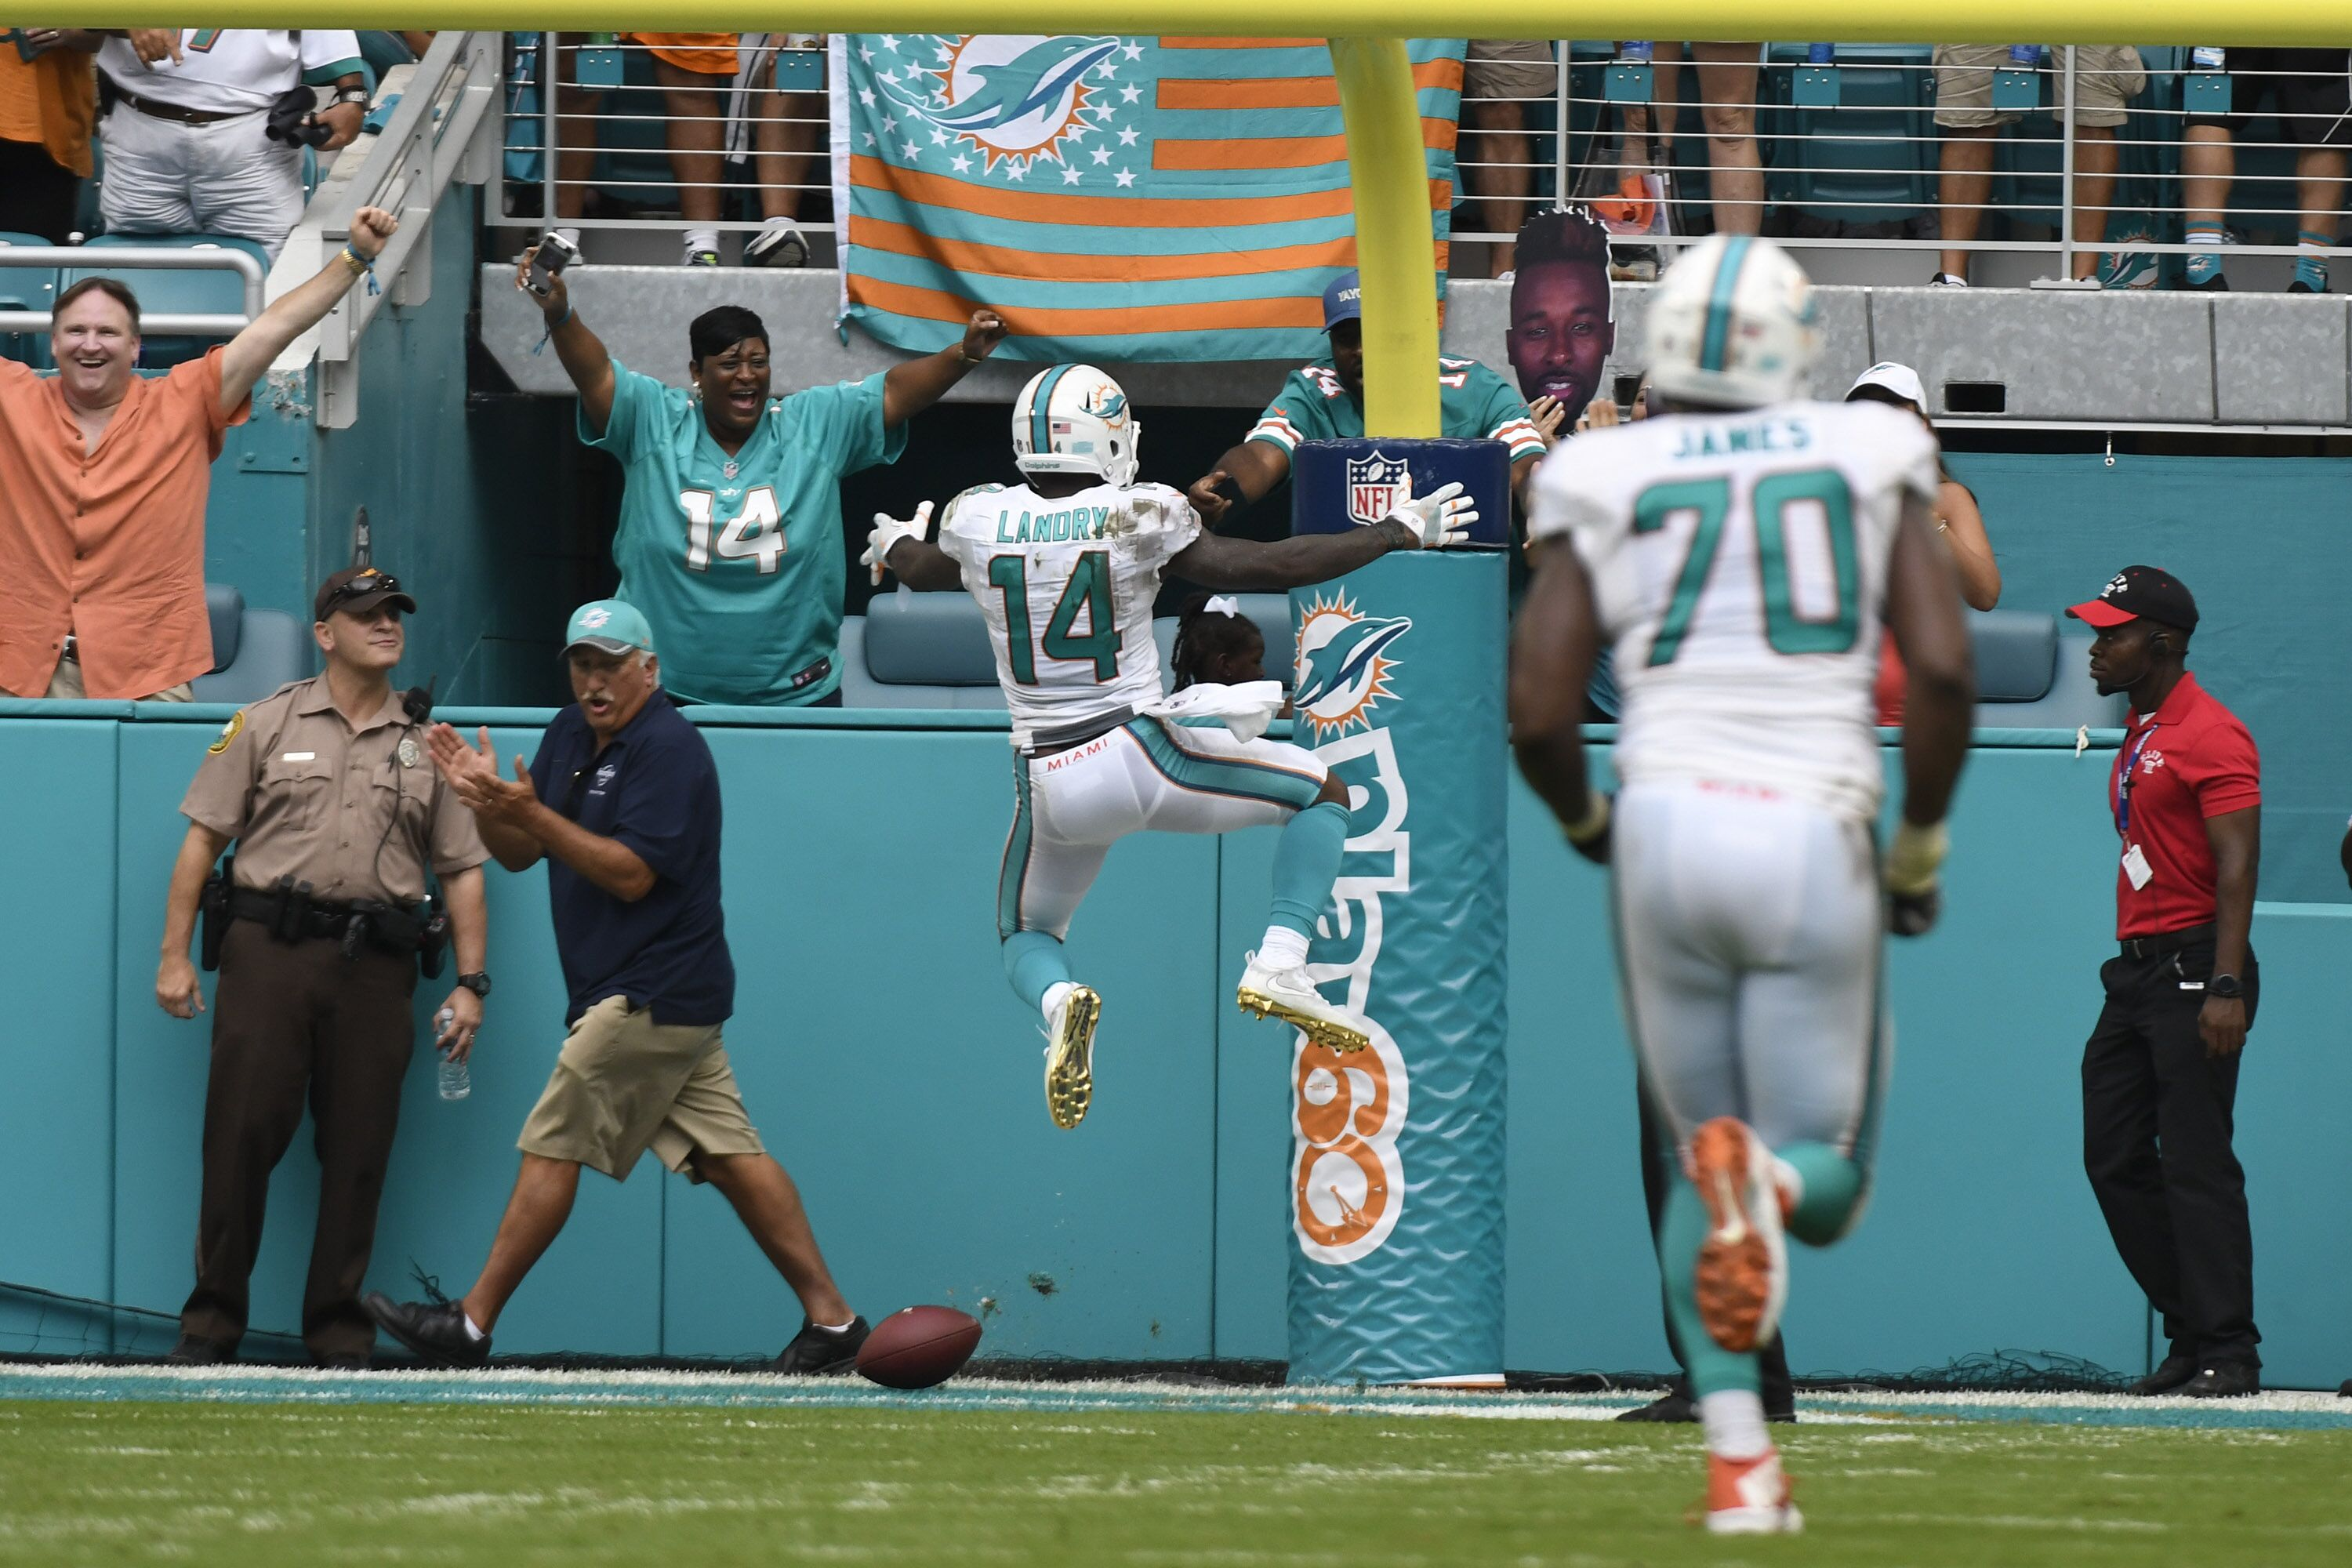 610458278-cleveland-browns-v-miami-dolphins.jpg